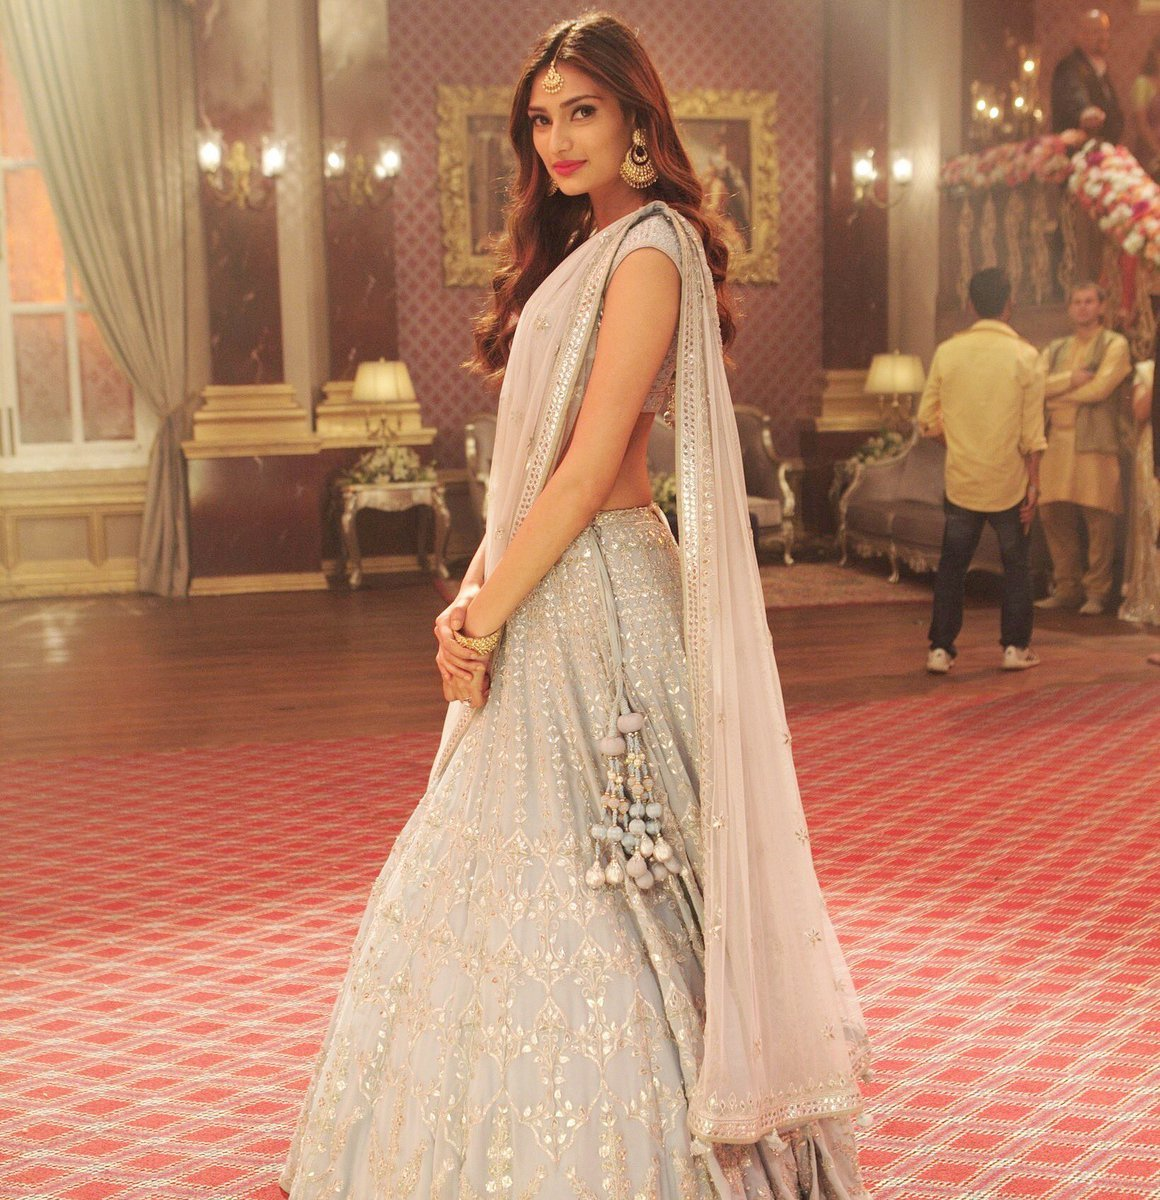 Athiya Shetty Birthday,Biography,Wiki,Family,Career and Images